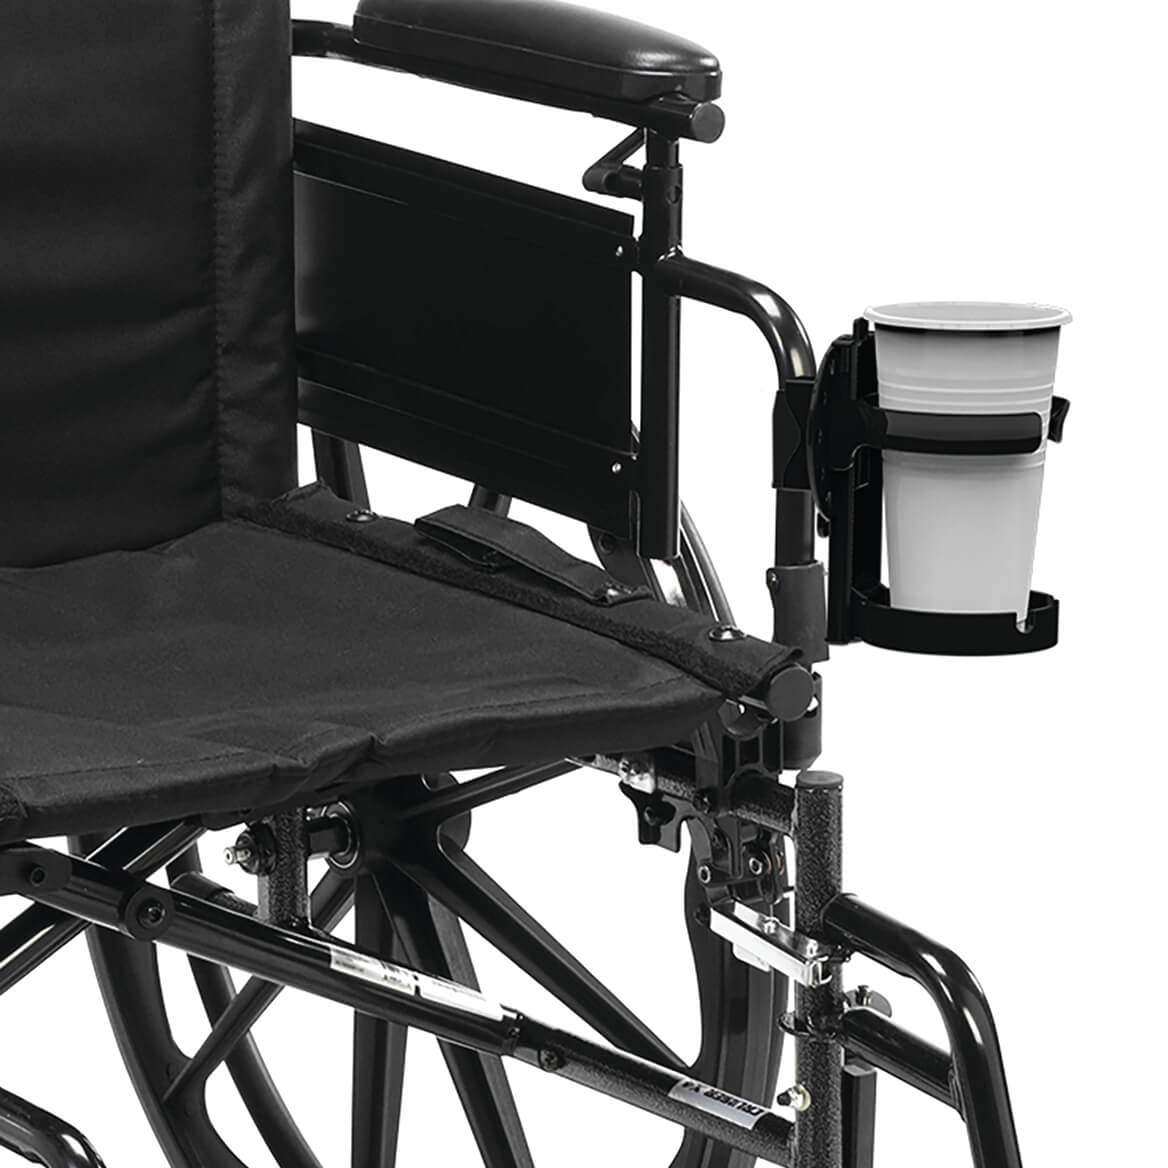 Mobility Cup Holder with Adjustable Height and 360° Rotation-369093